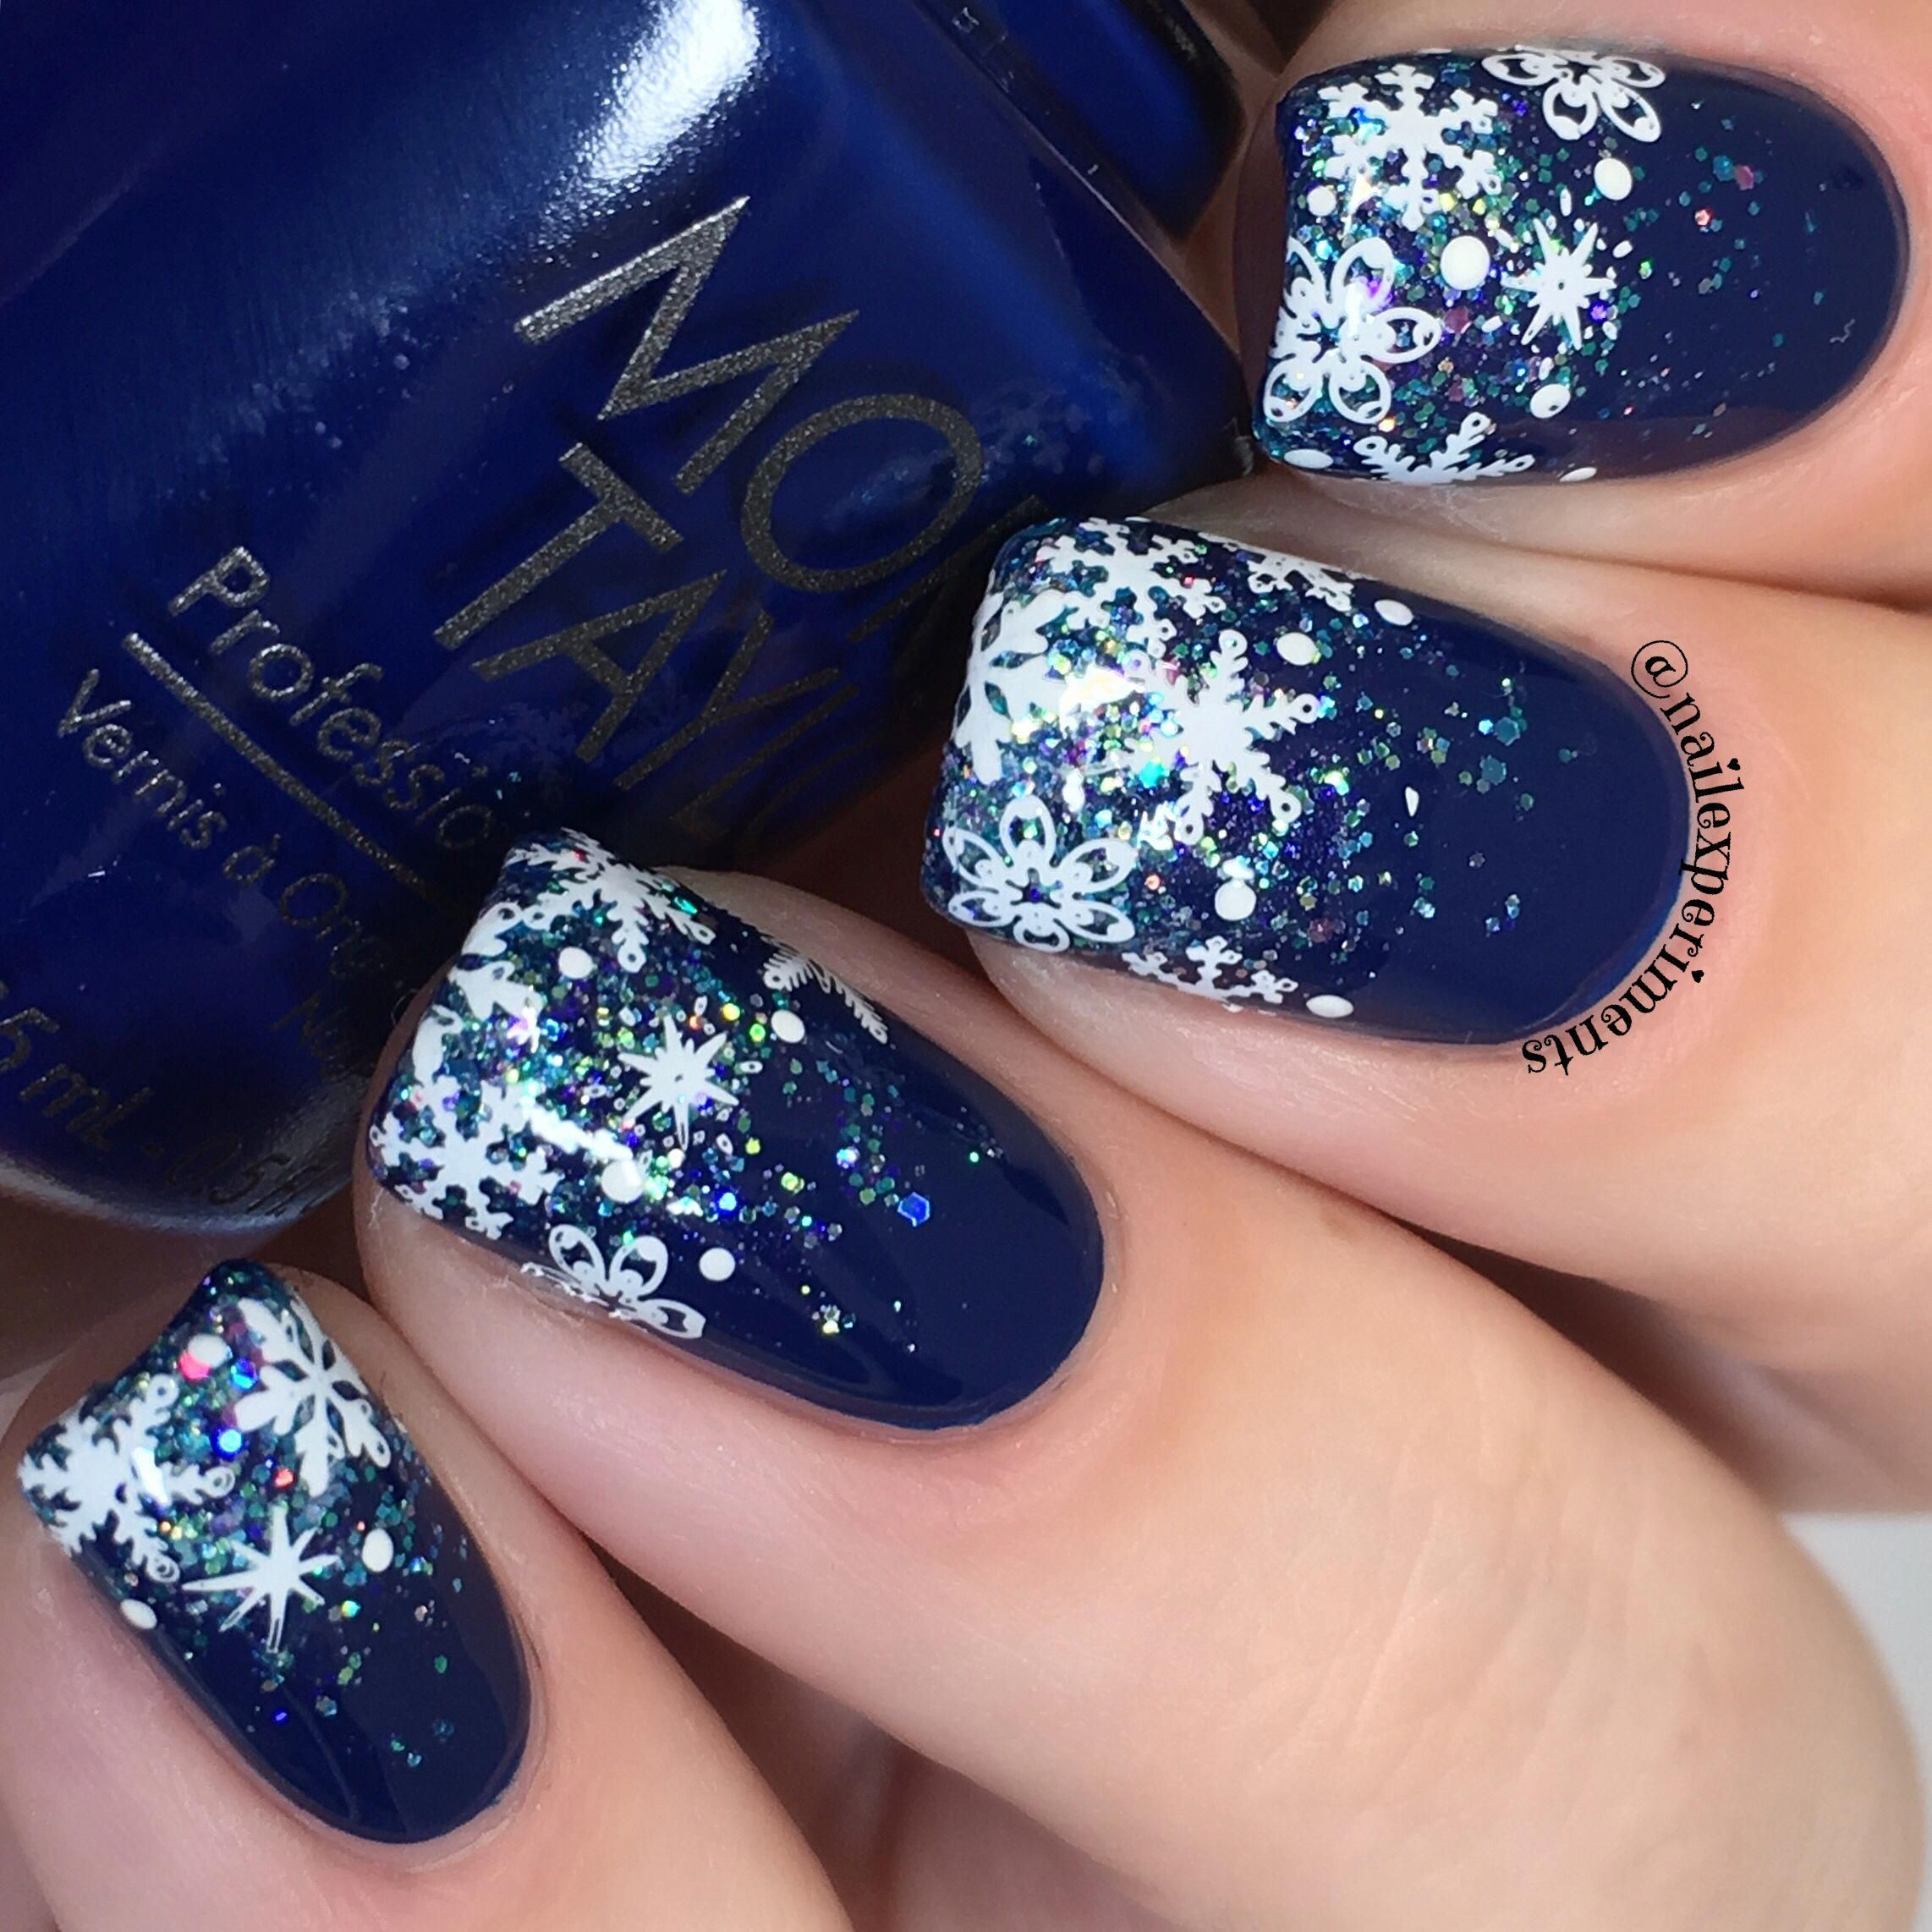 Classy Winter Snowflake Nail Art I Had So Much Fun Creating These